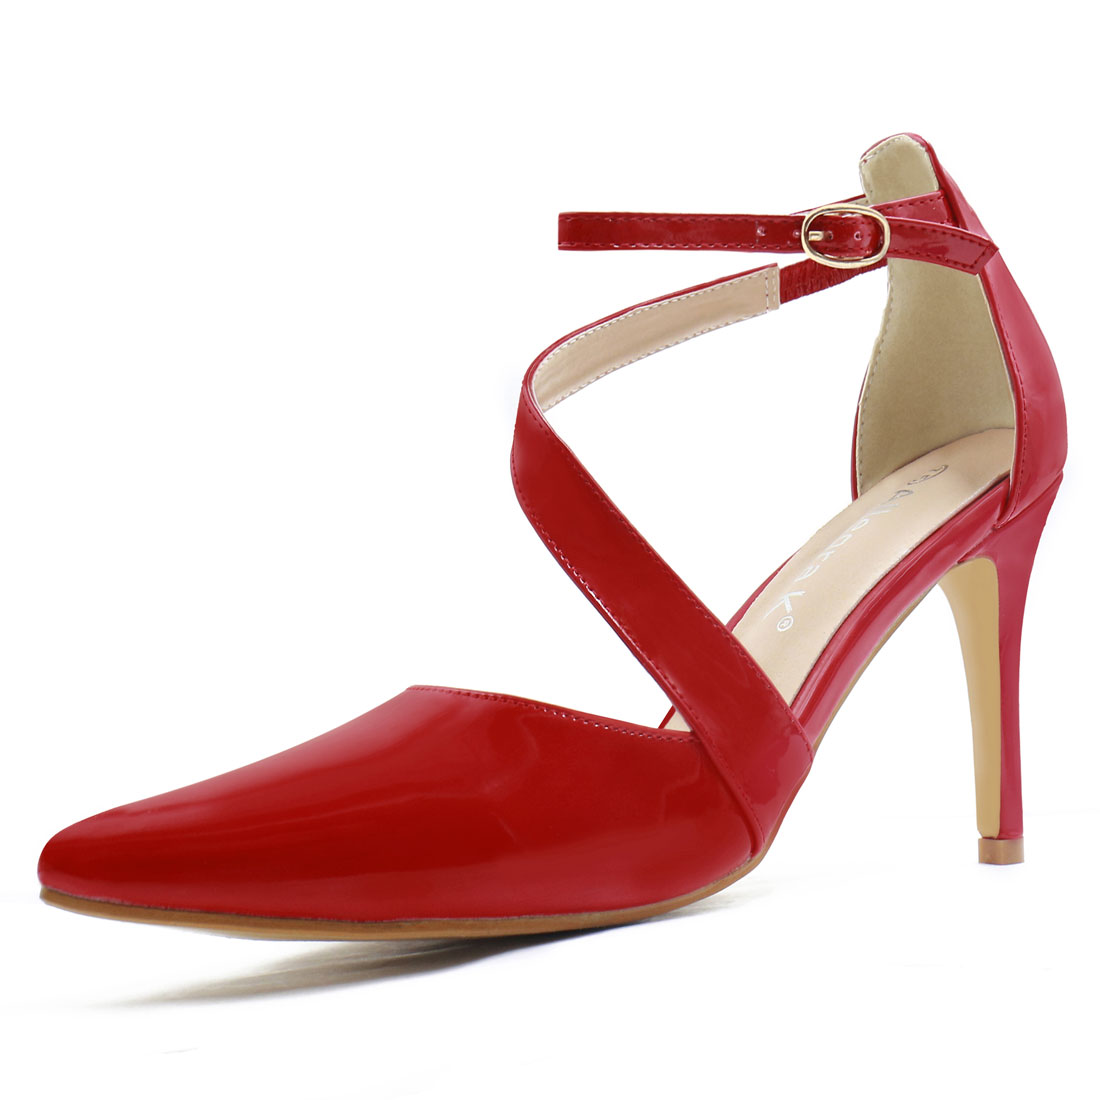 Women Asymmetrical Strap Stiletto Heel Pointy-Toe Pumps Red US 7.5